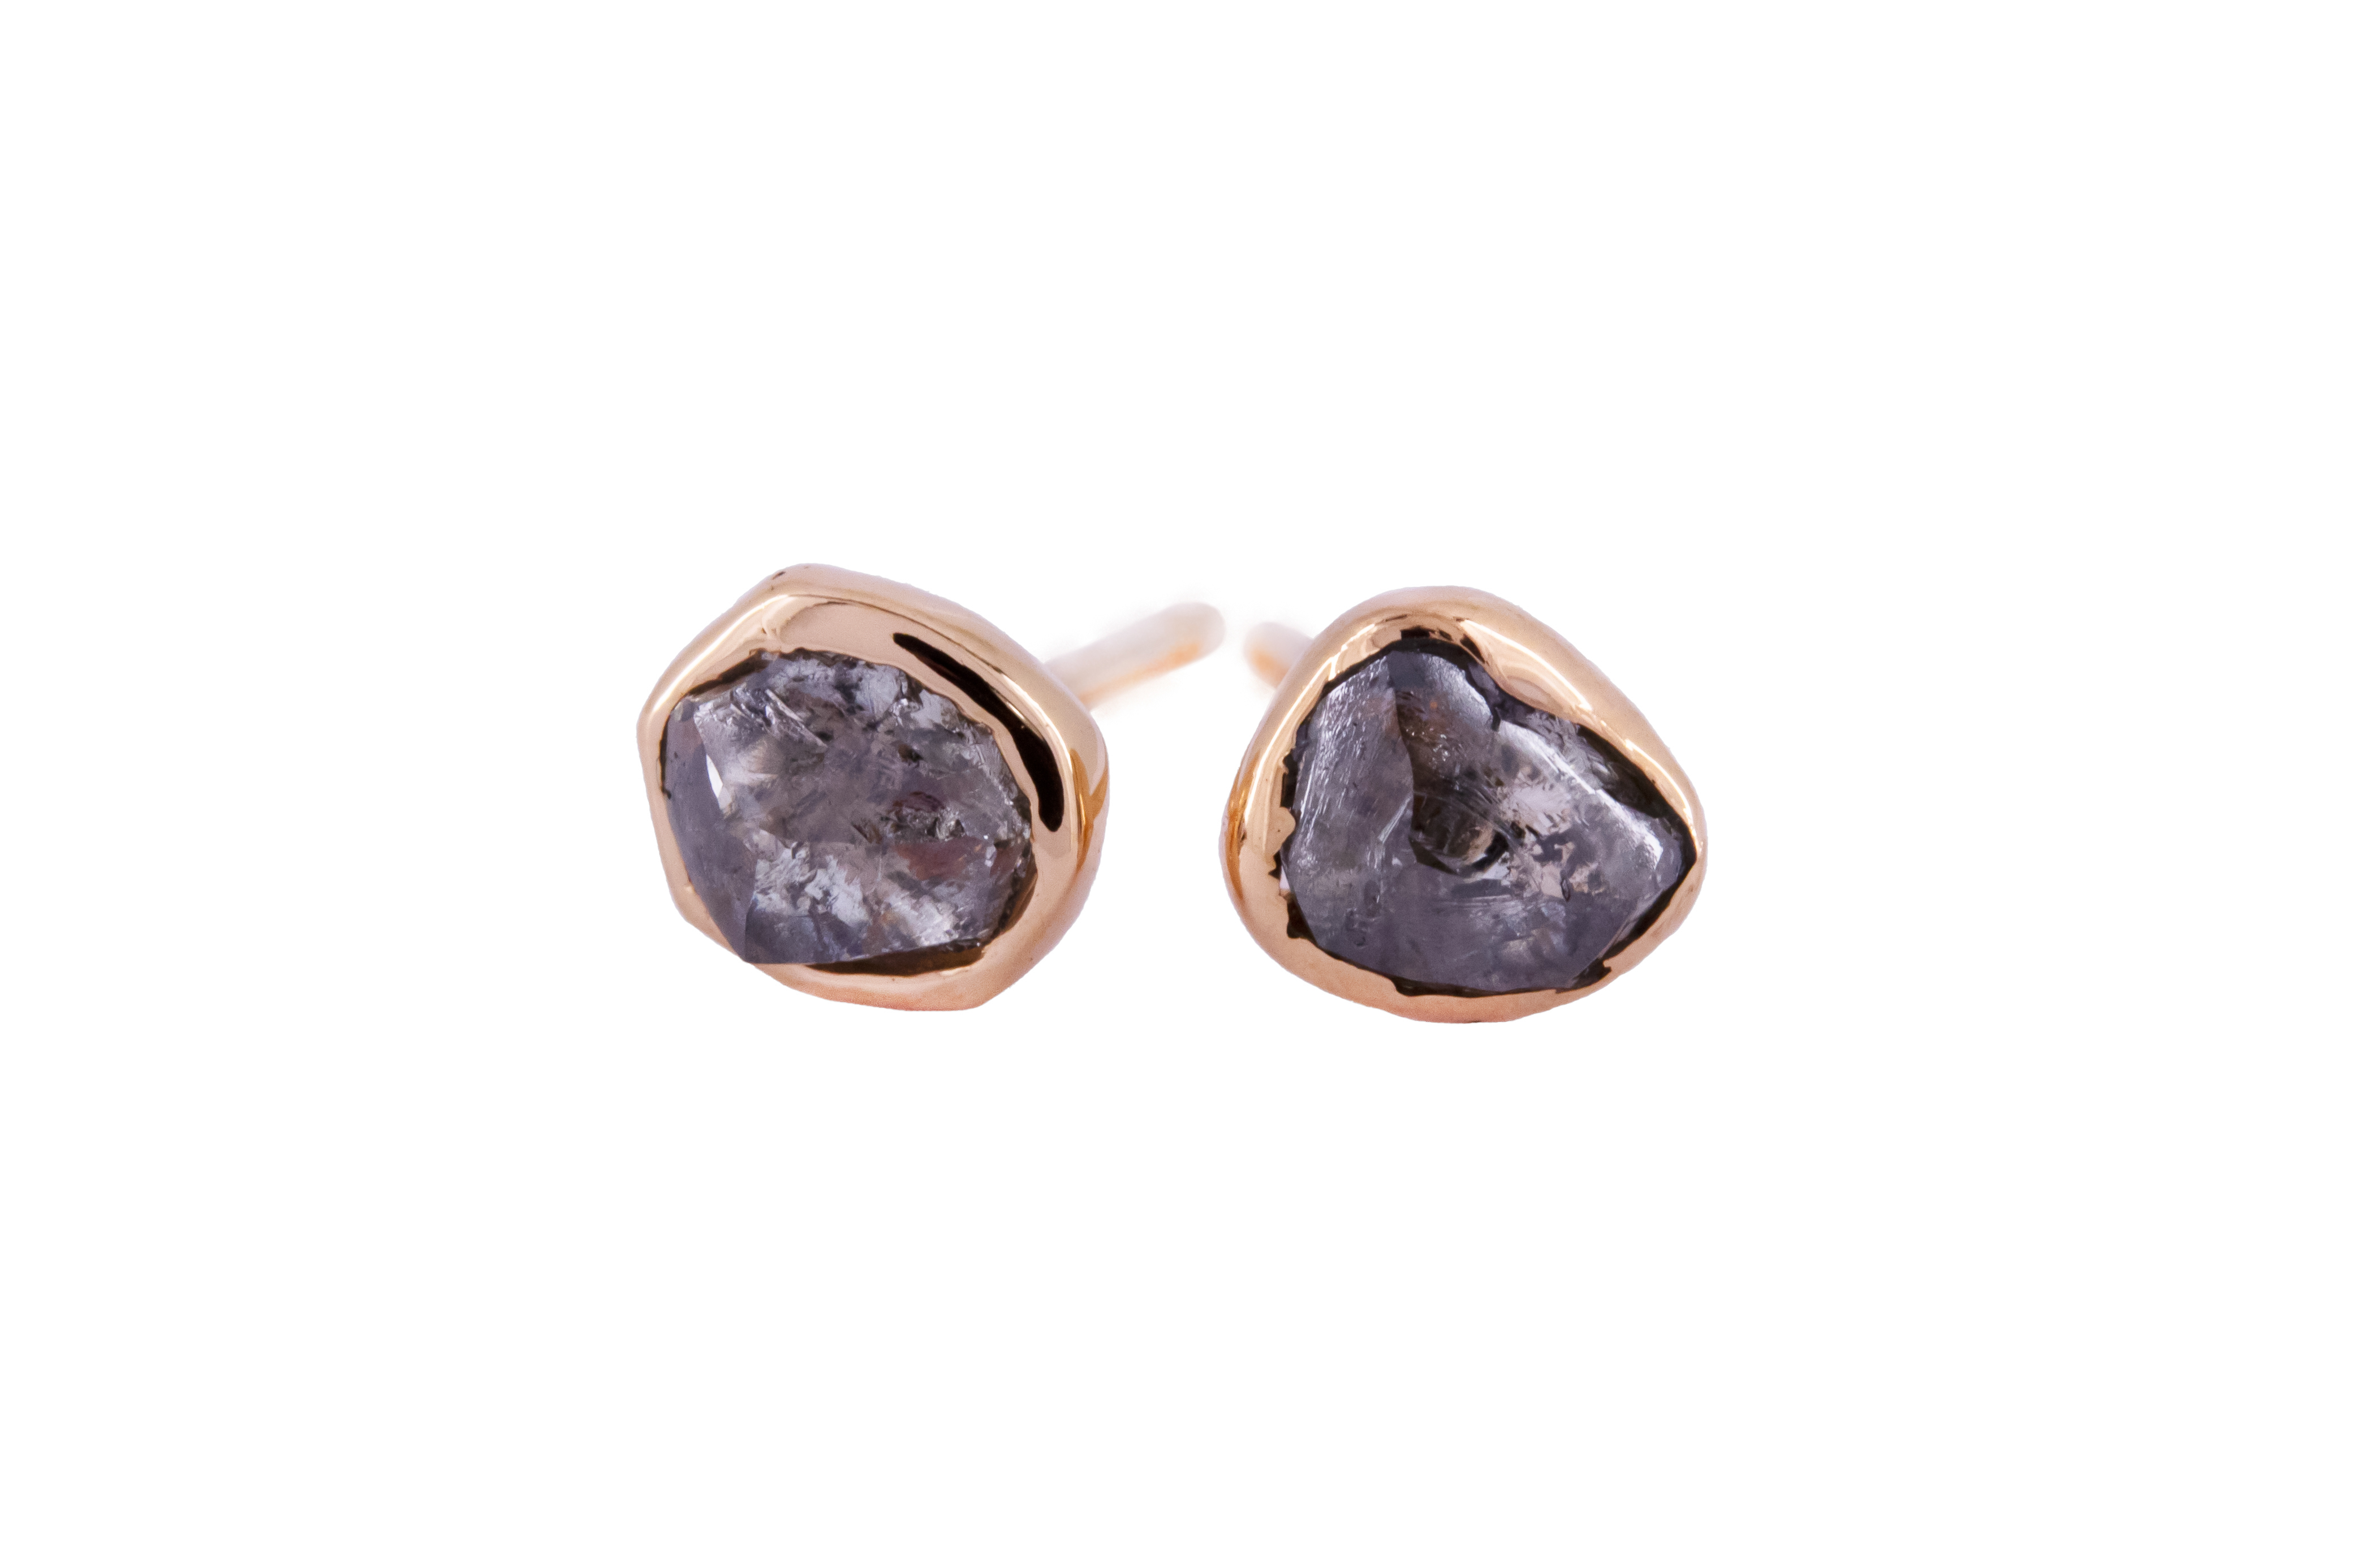 BOULDERS BEACH in 9ct Rose Gold